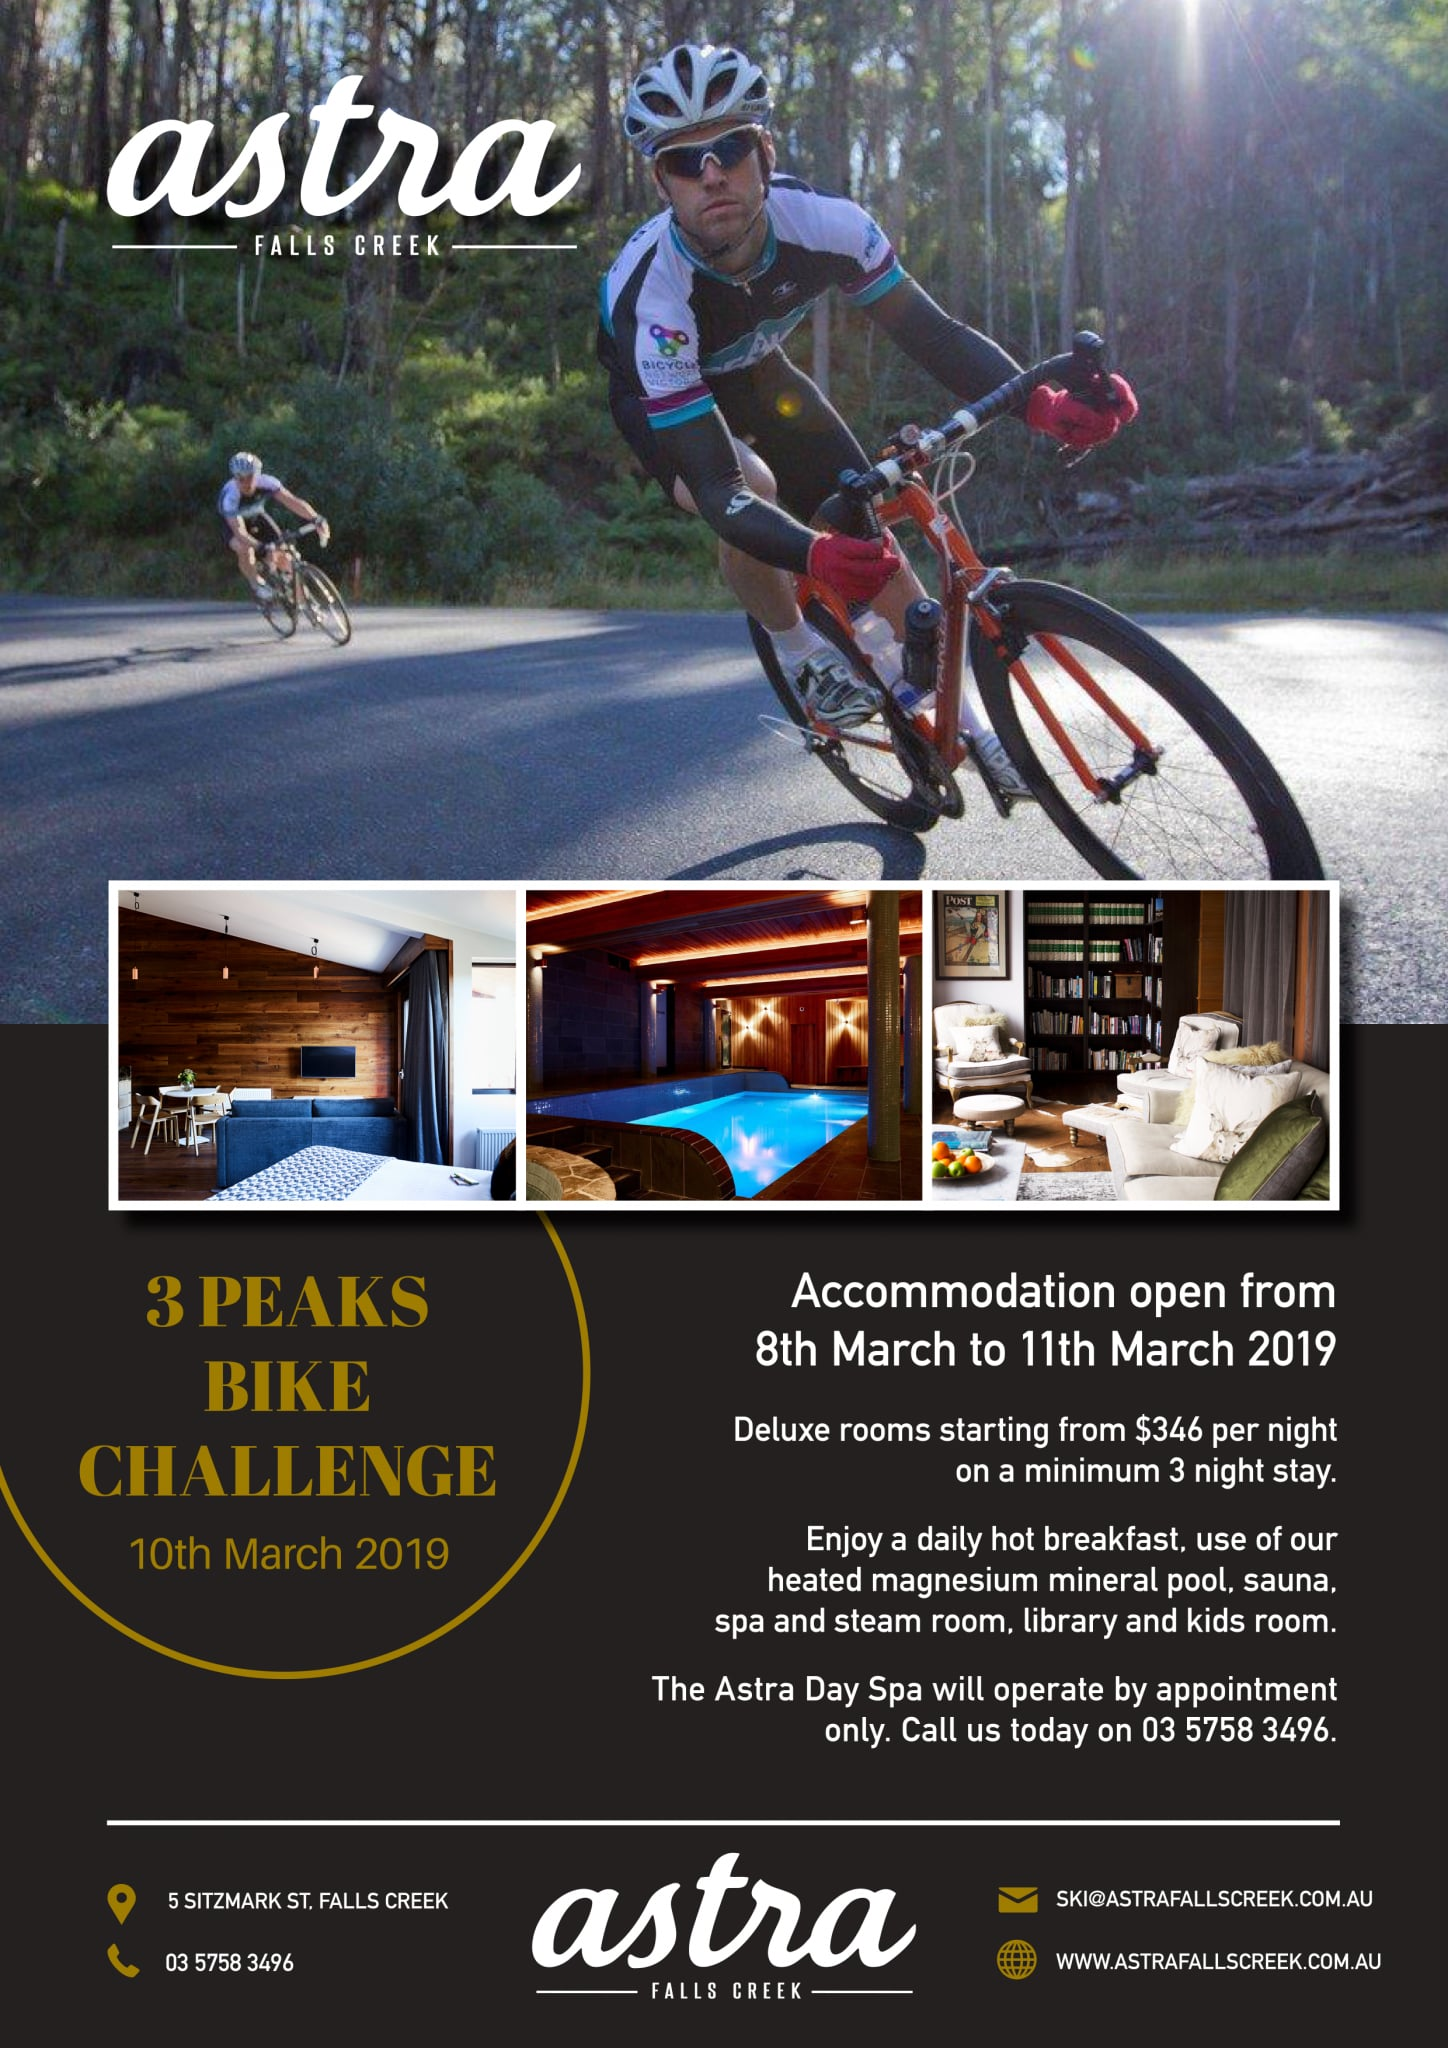 Bike Challenge No Rest at Astra in Falls Creek